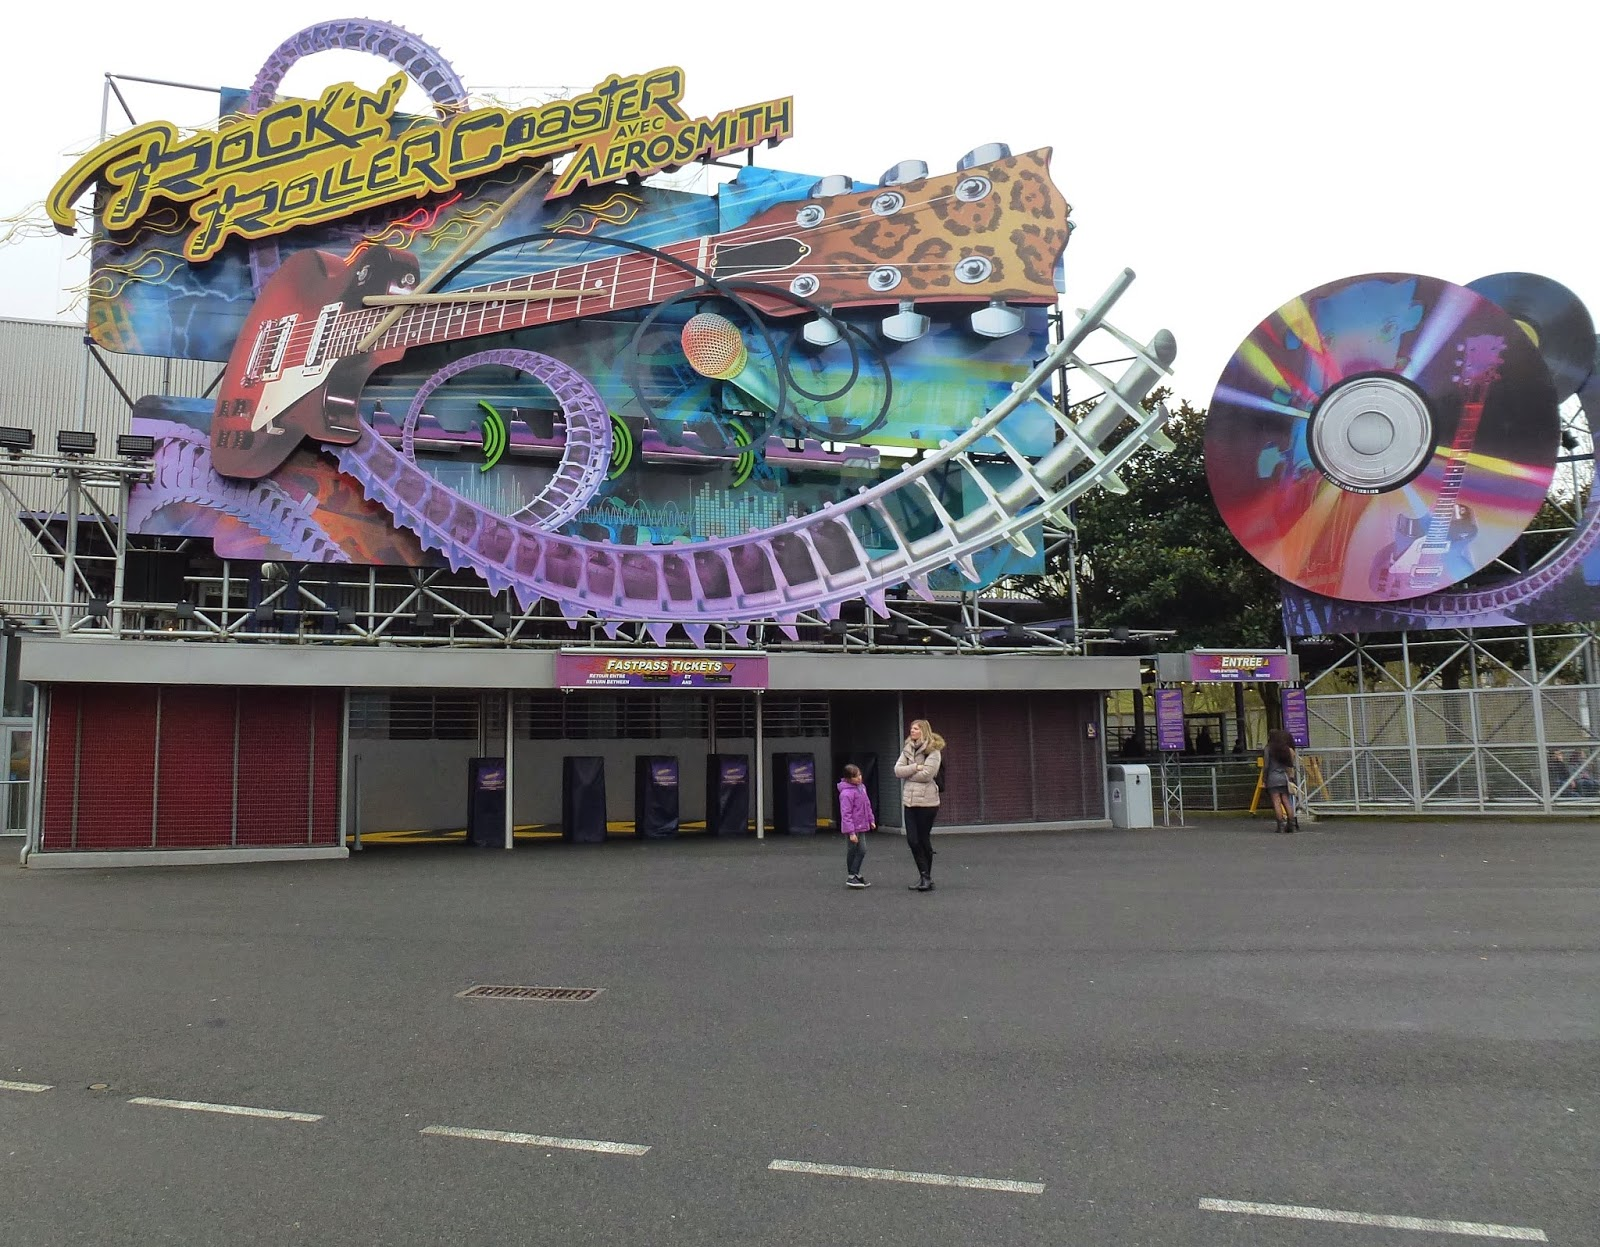 rock-n-rollercoaster-paris